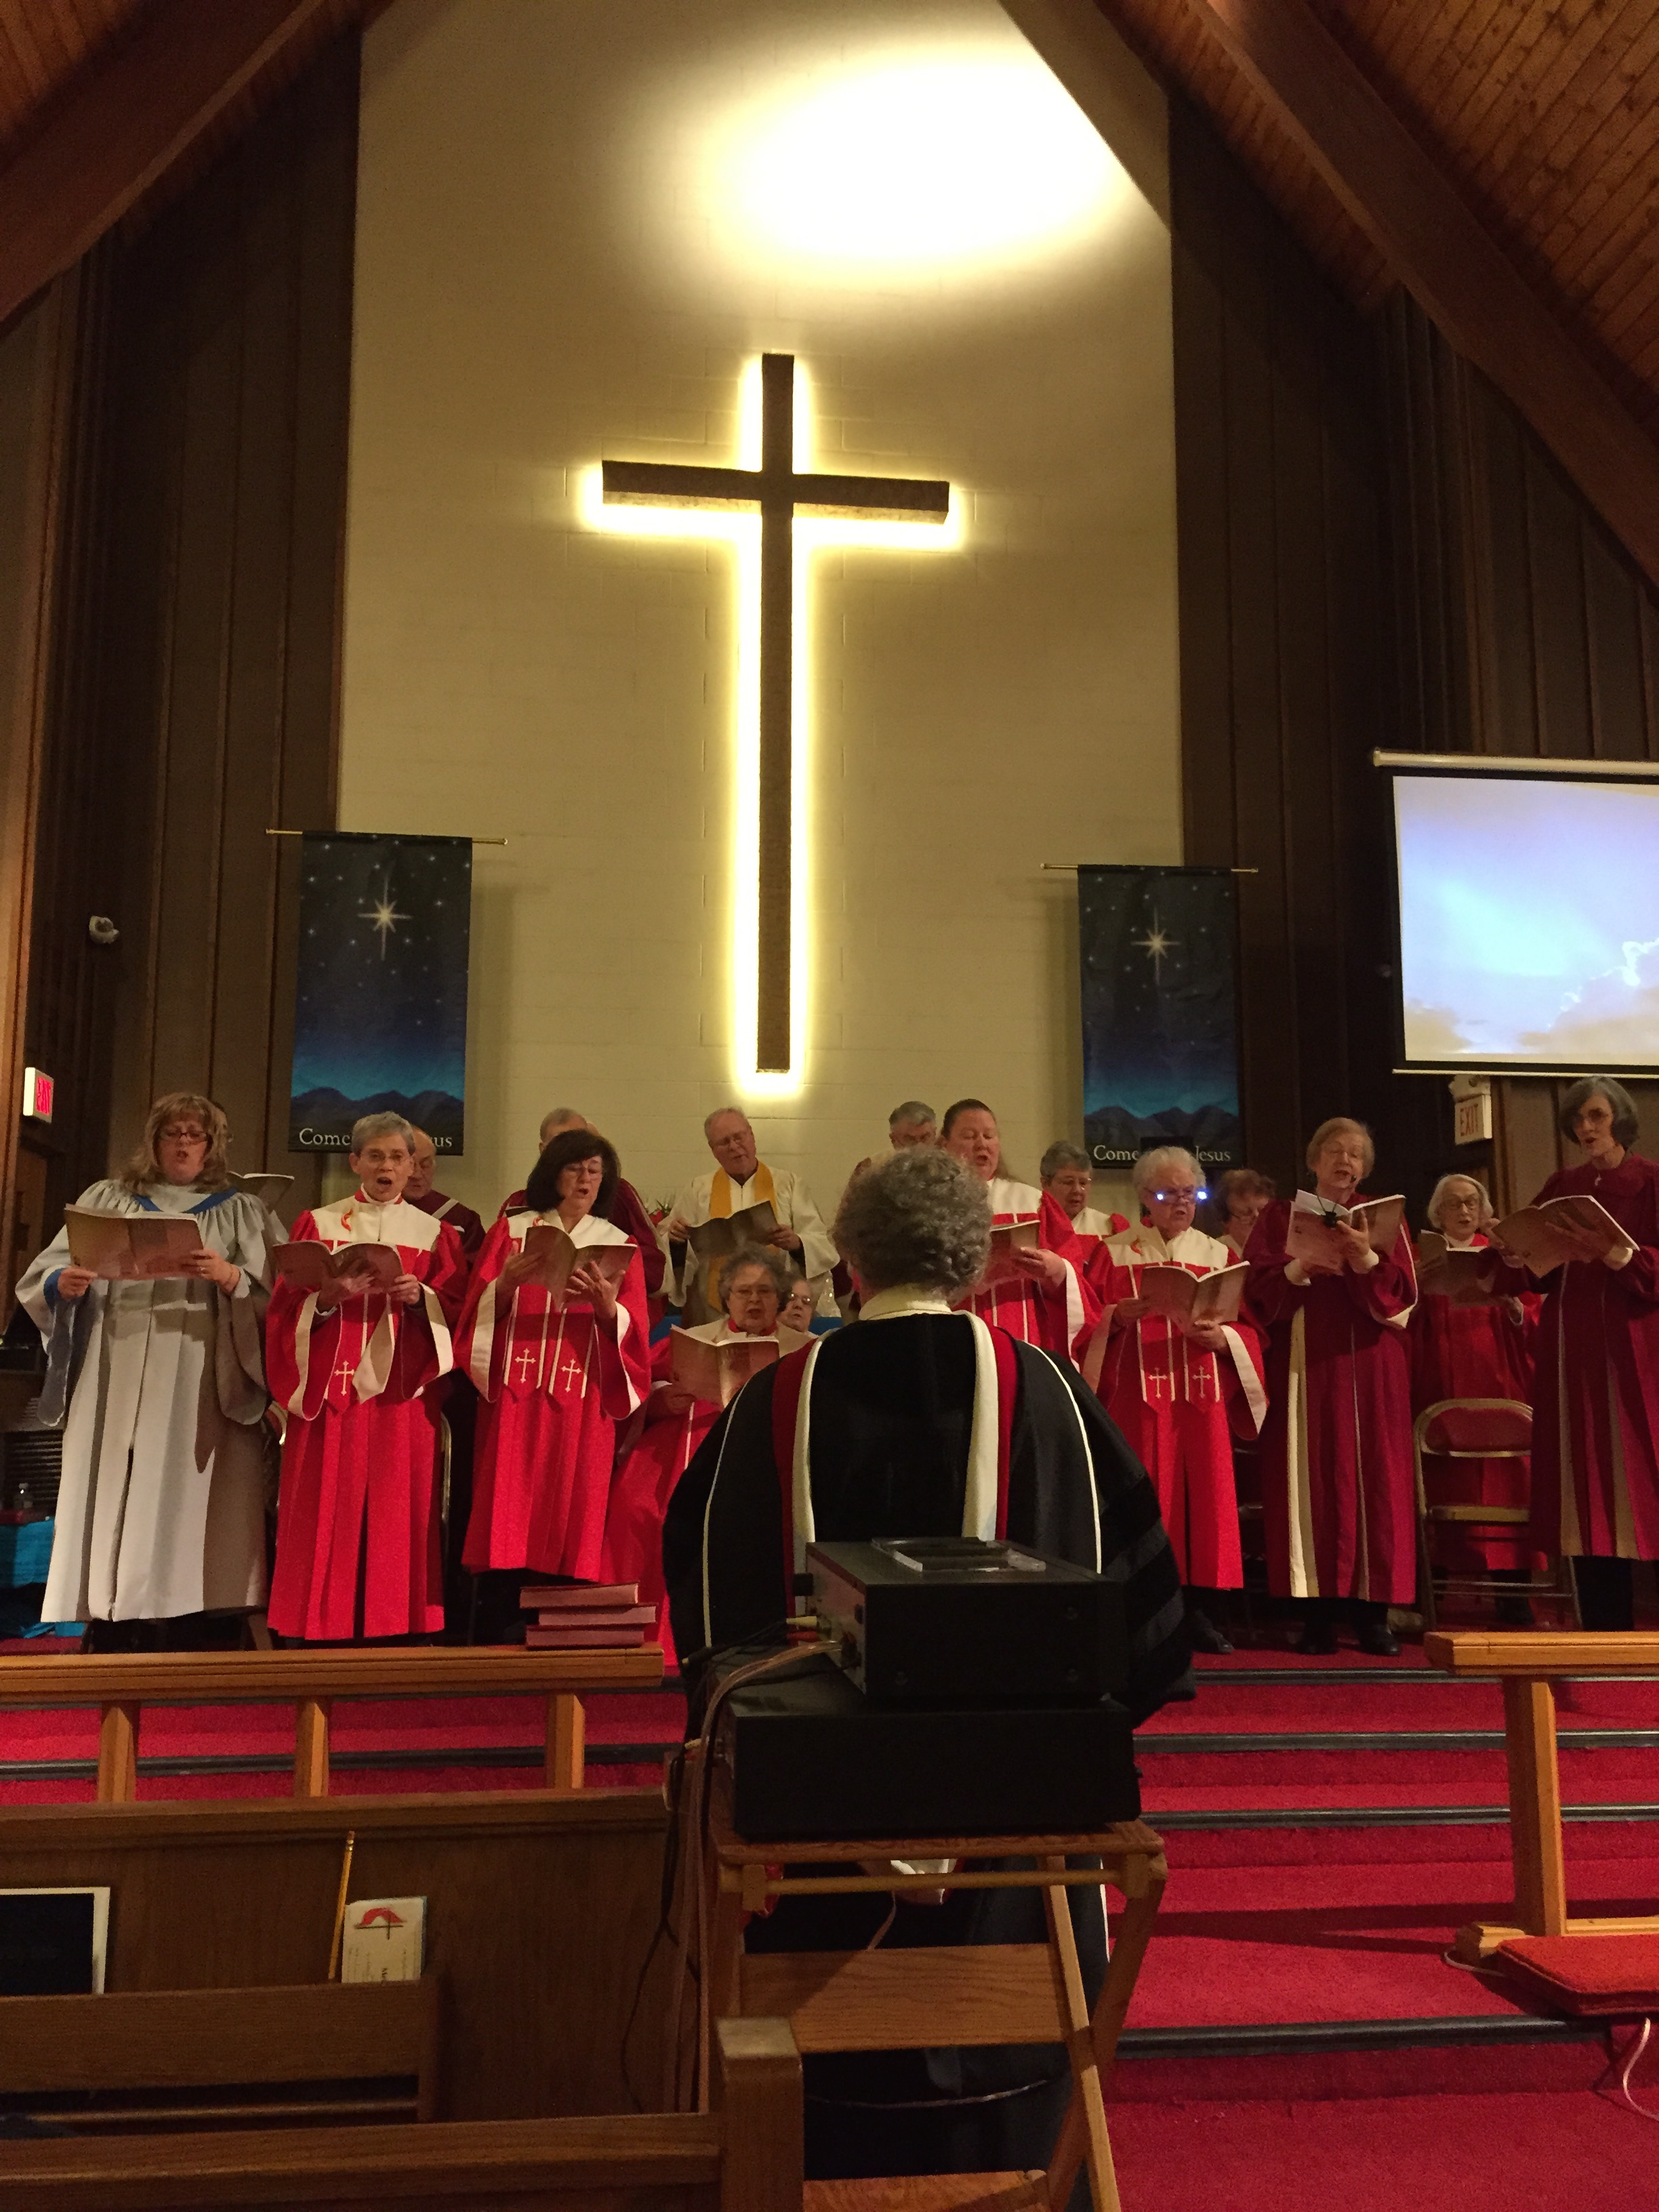 Image of the Northern Shore Cluster Choir at the Matawan UMC on Nov 30.